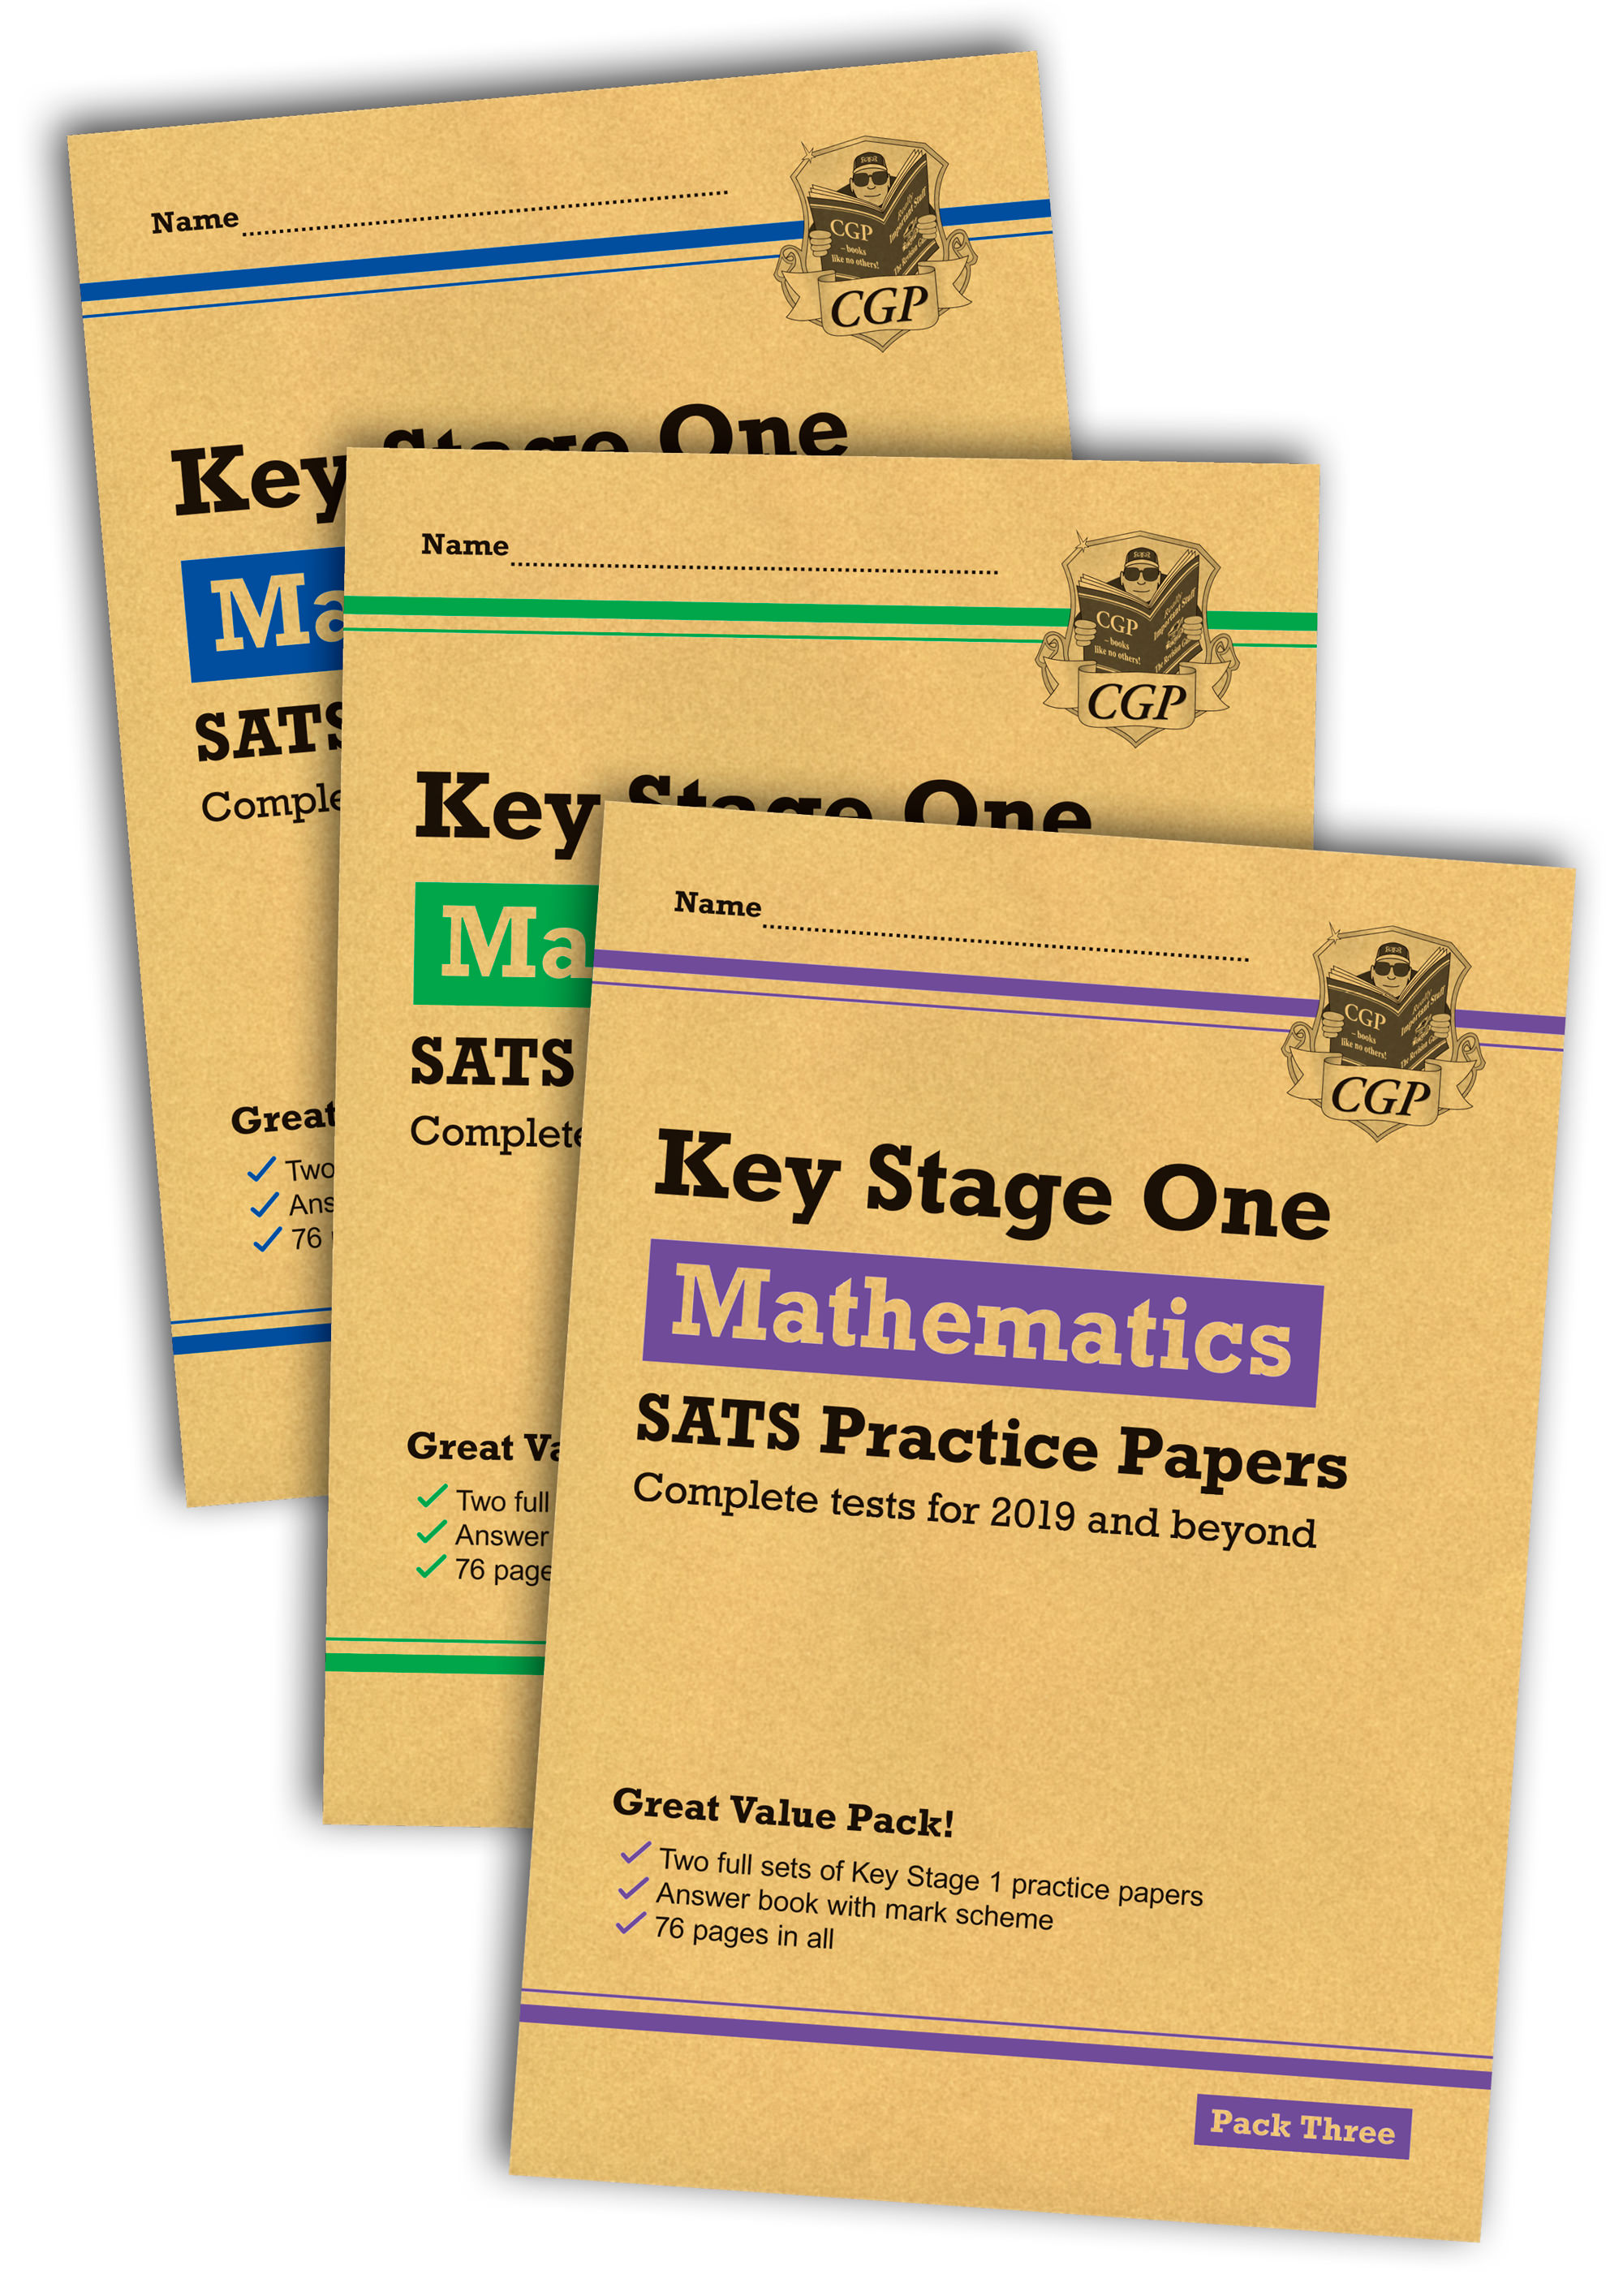 MHB3P13 - New KS1 Maths SATS Practice Paper Bundle: Packs 1, 2 & 3 (for the 2020 tests)